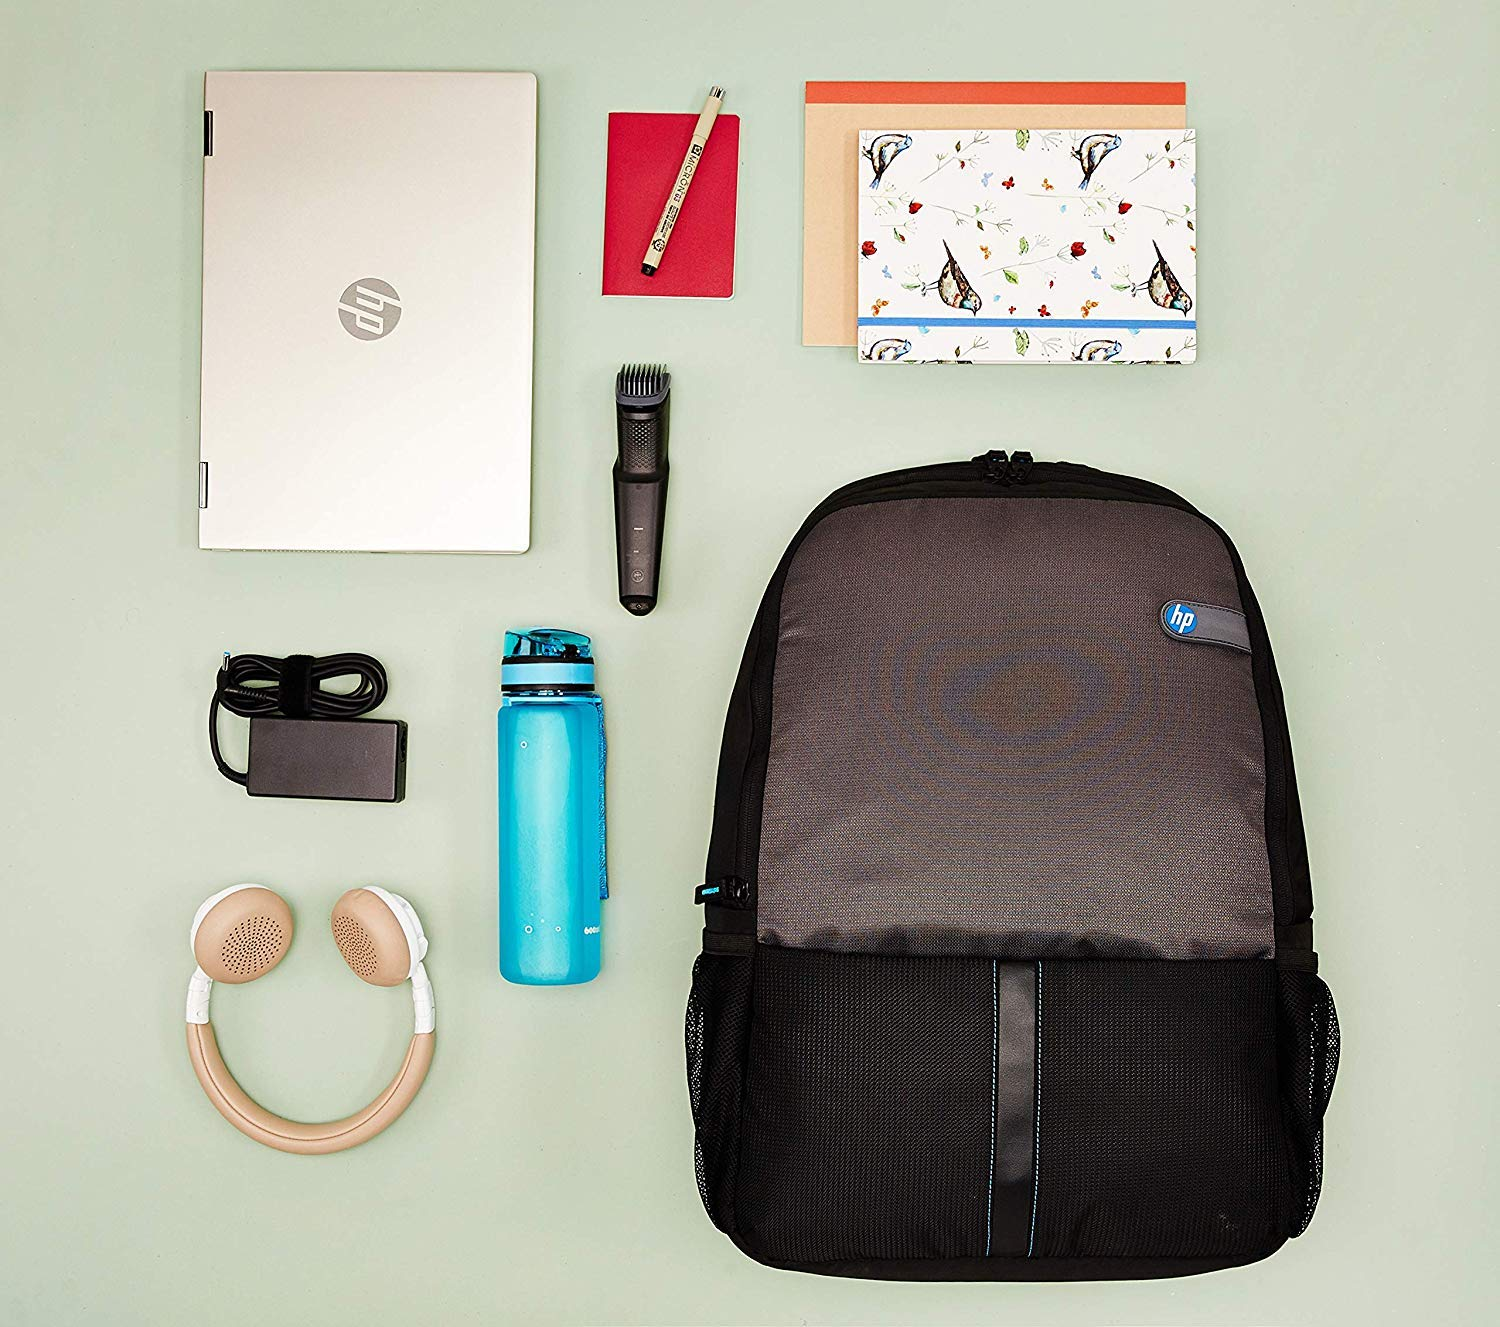 Loot Offer | HP Express 27 ltrs Laptop Backpack at Just Rs. 649